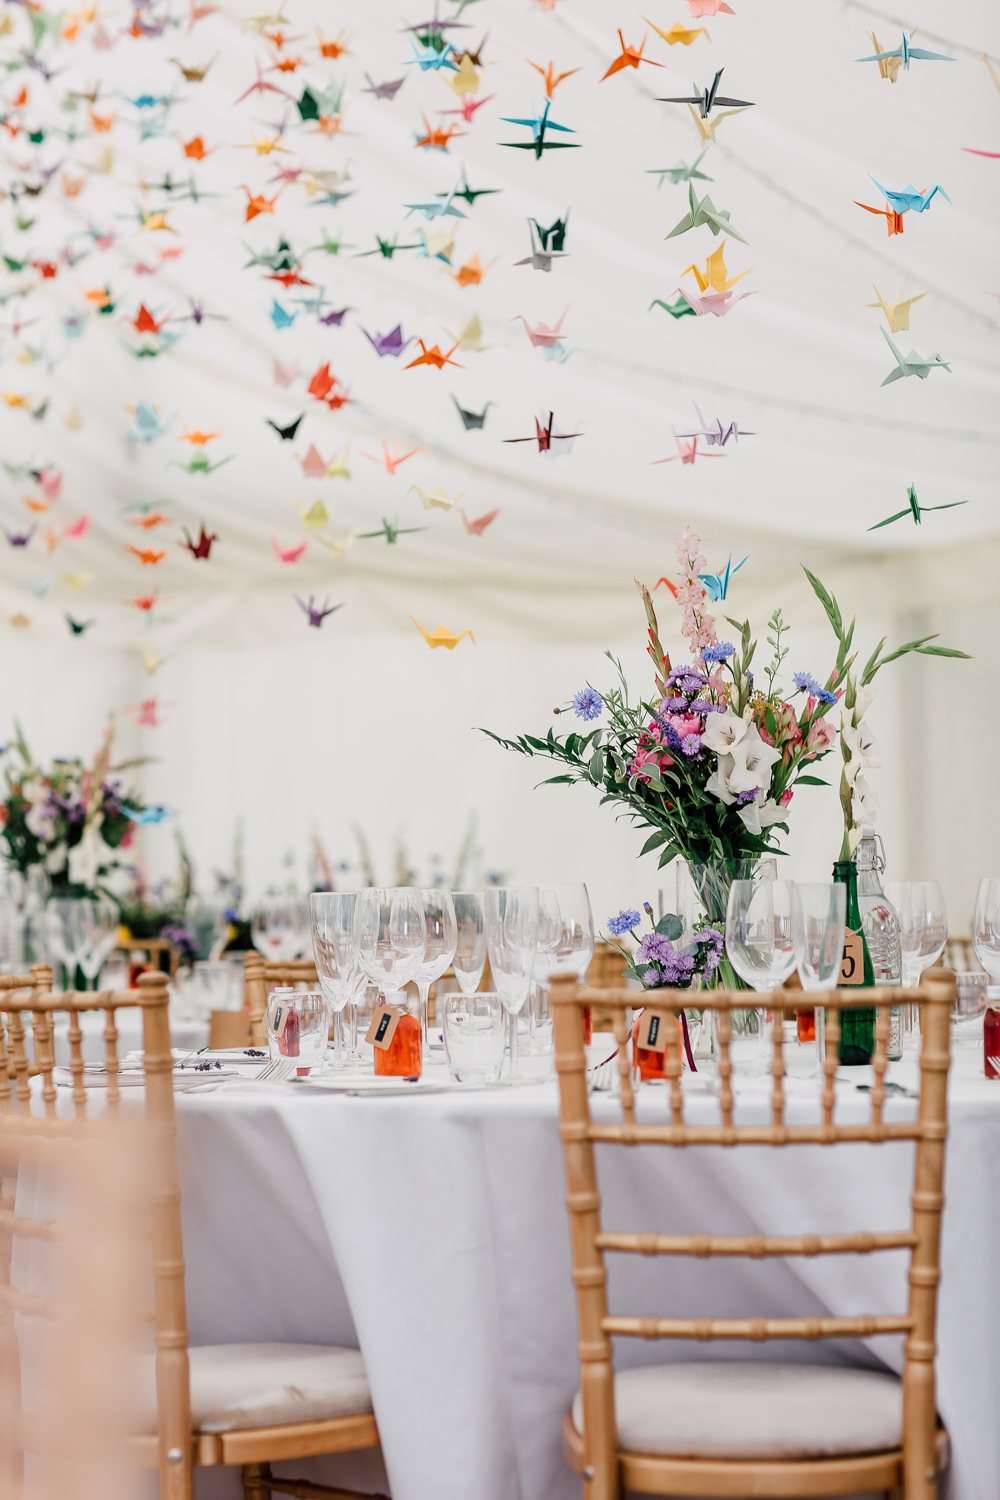 Marquee Origami Birds Paper Cranes Table Flowers Colourful Barff Country House Wedding Sarah Beth Photo